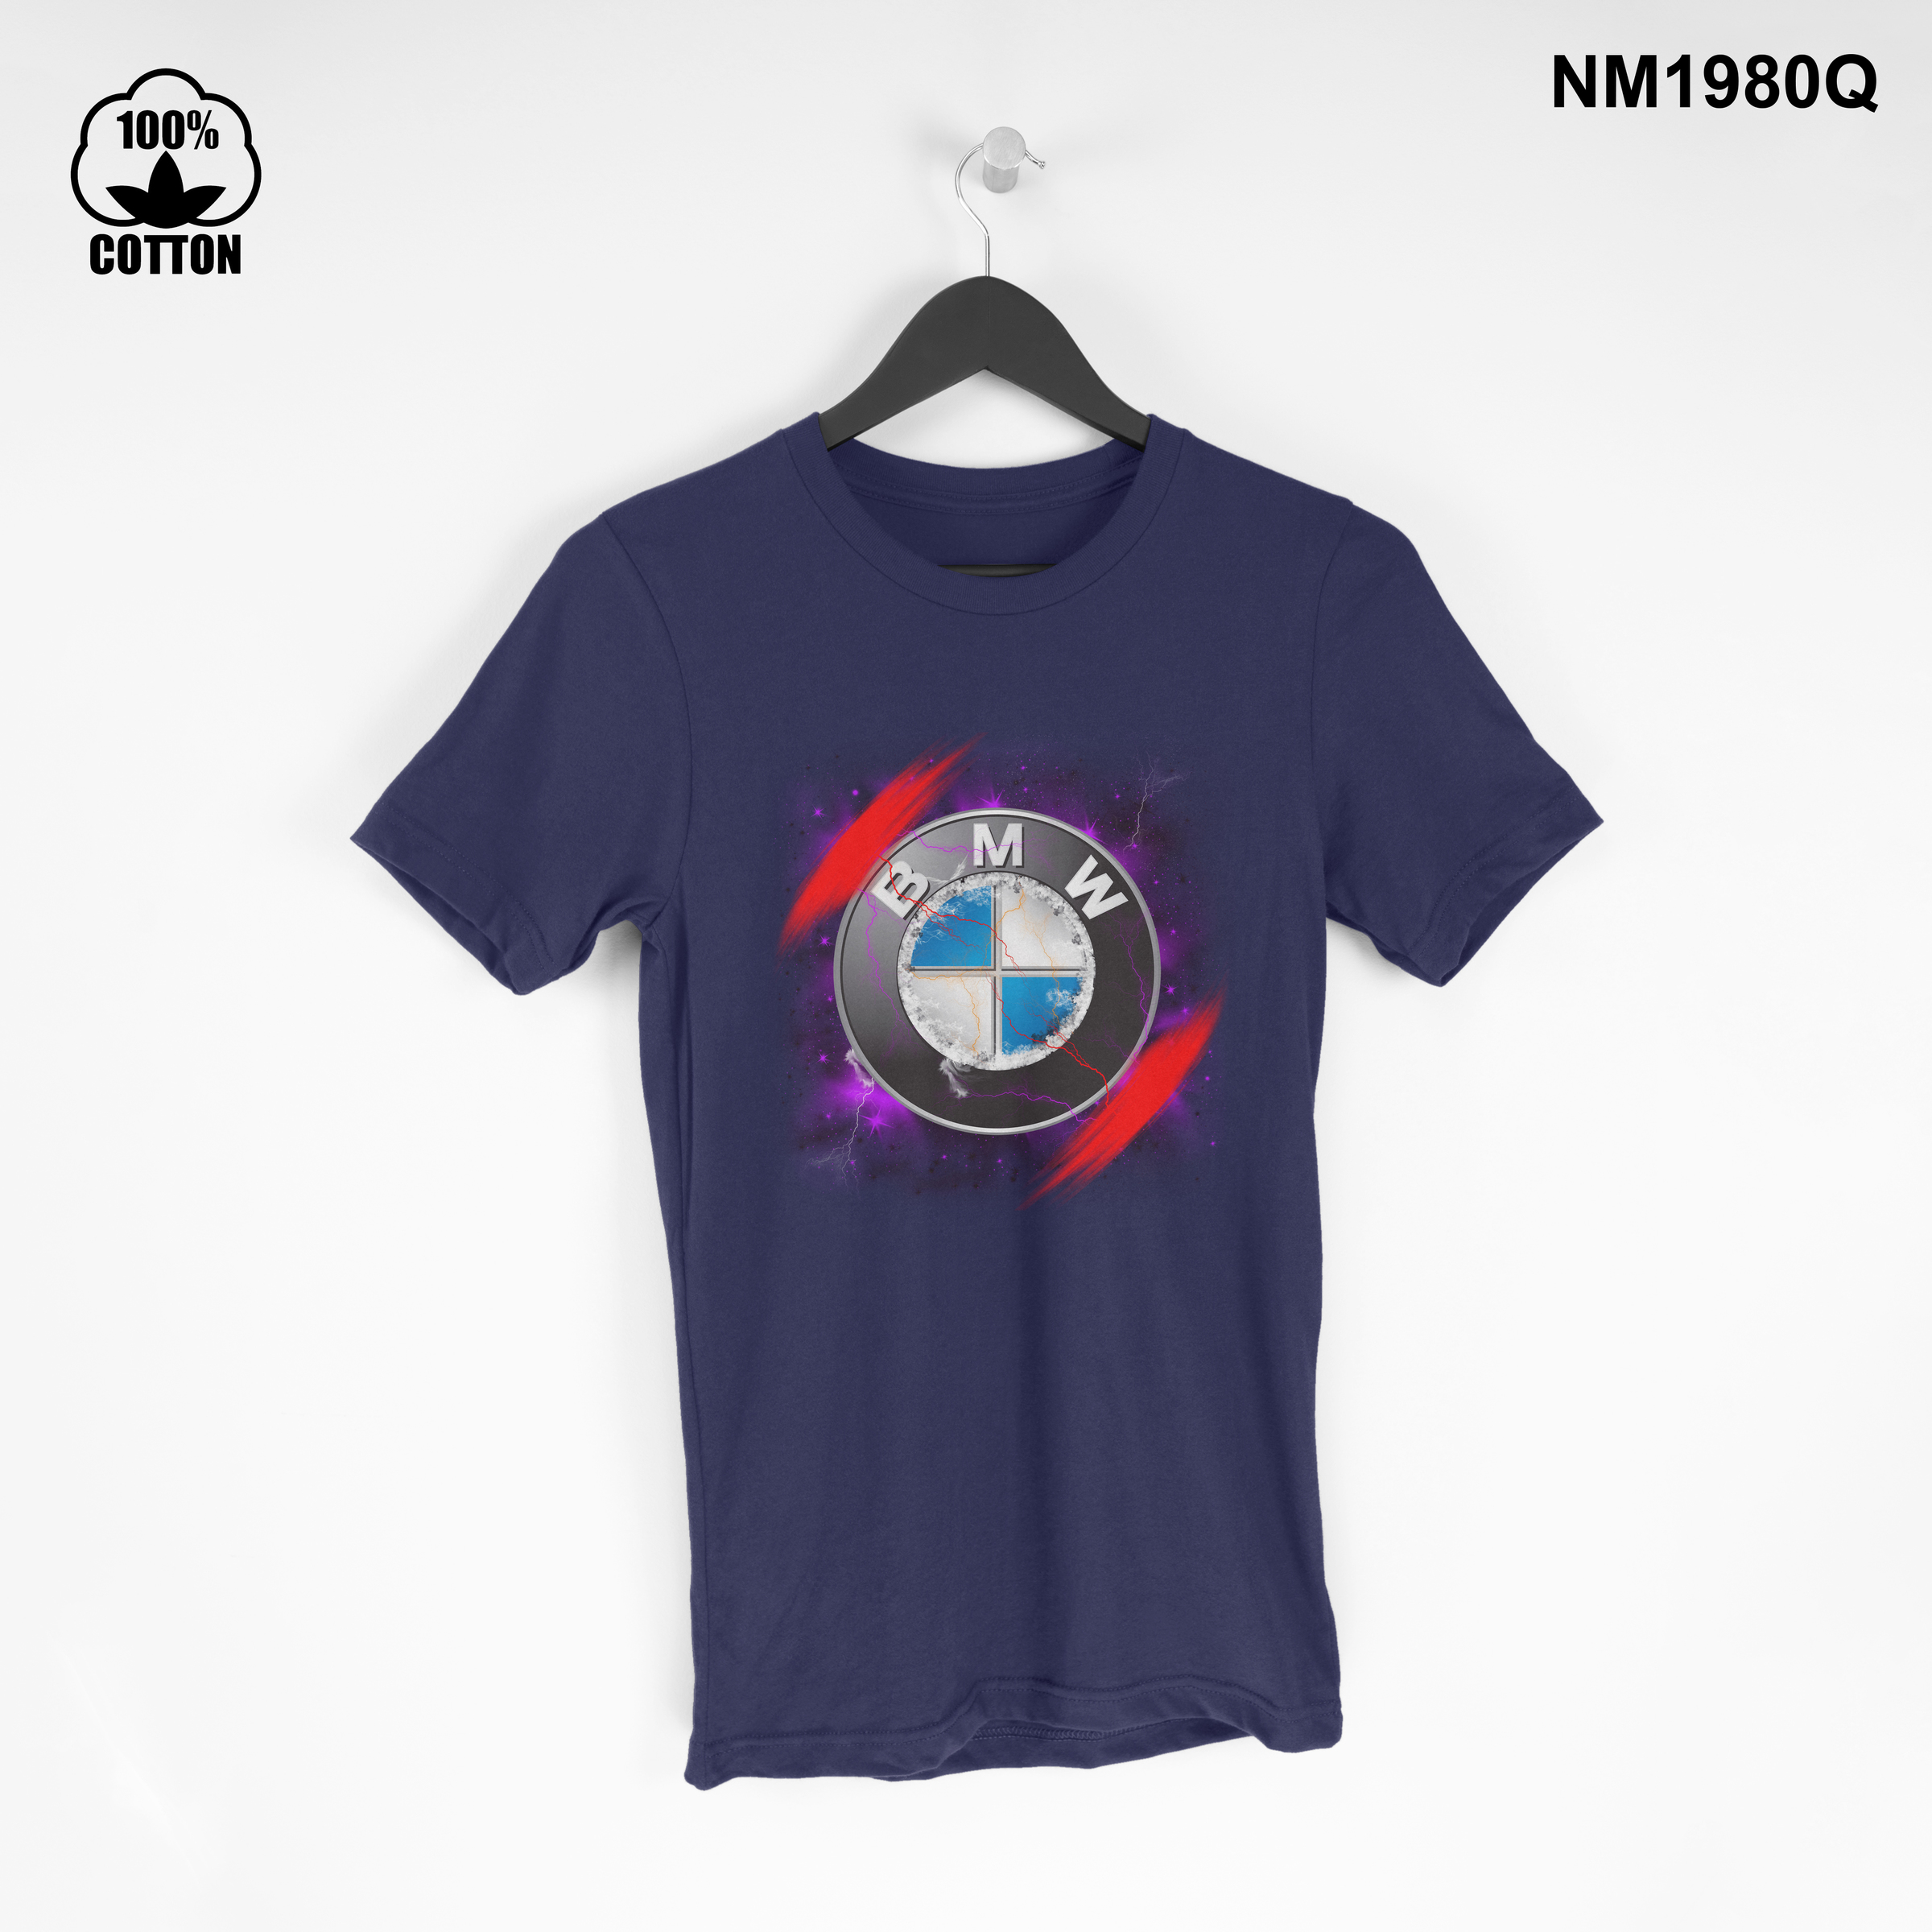 1.47 Rare Iitem BMW space New Design T Shirt Tee Unisex dark blue.jpg